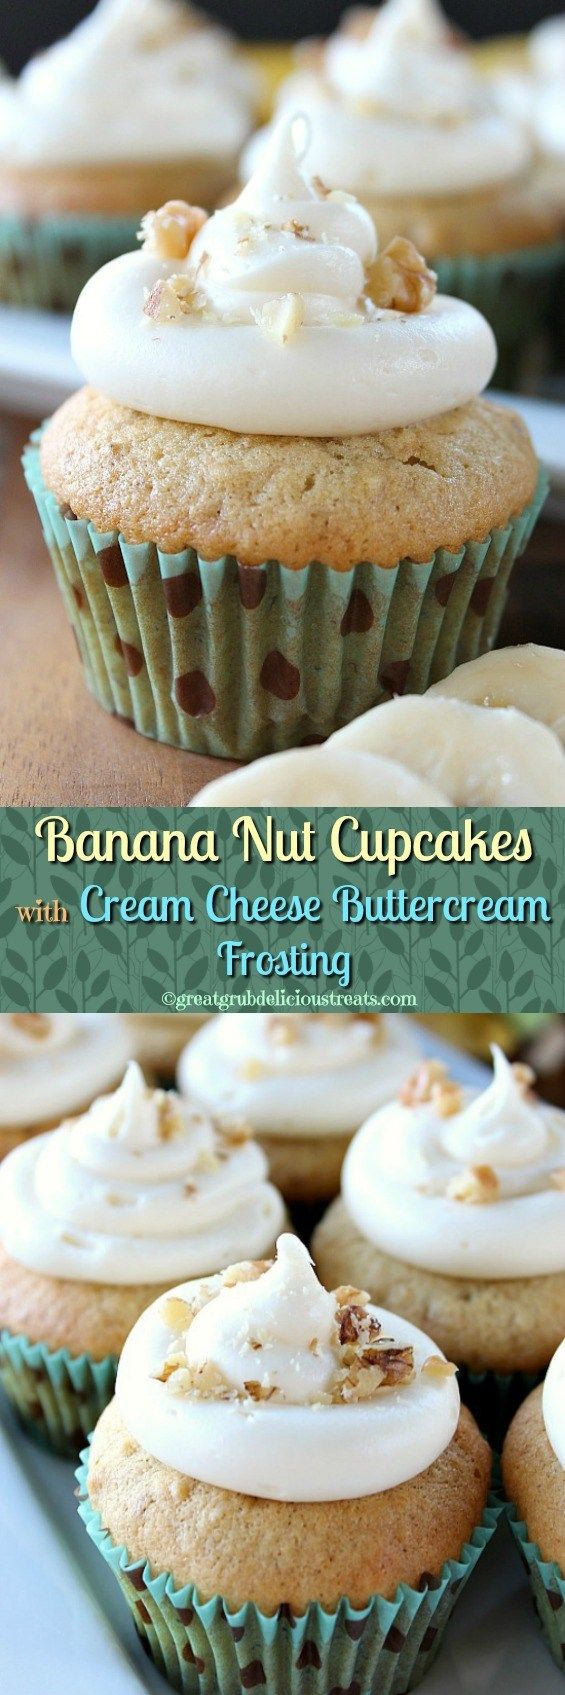 Banana Nut Cupcakes with Cream Cheese Buttercream Frosting (Cherry Cupcake Recipes)